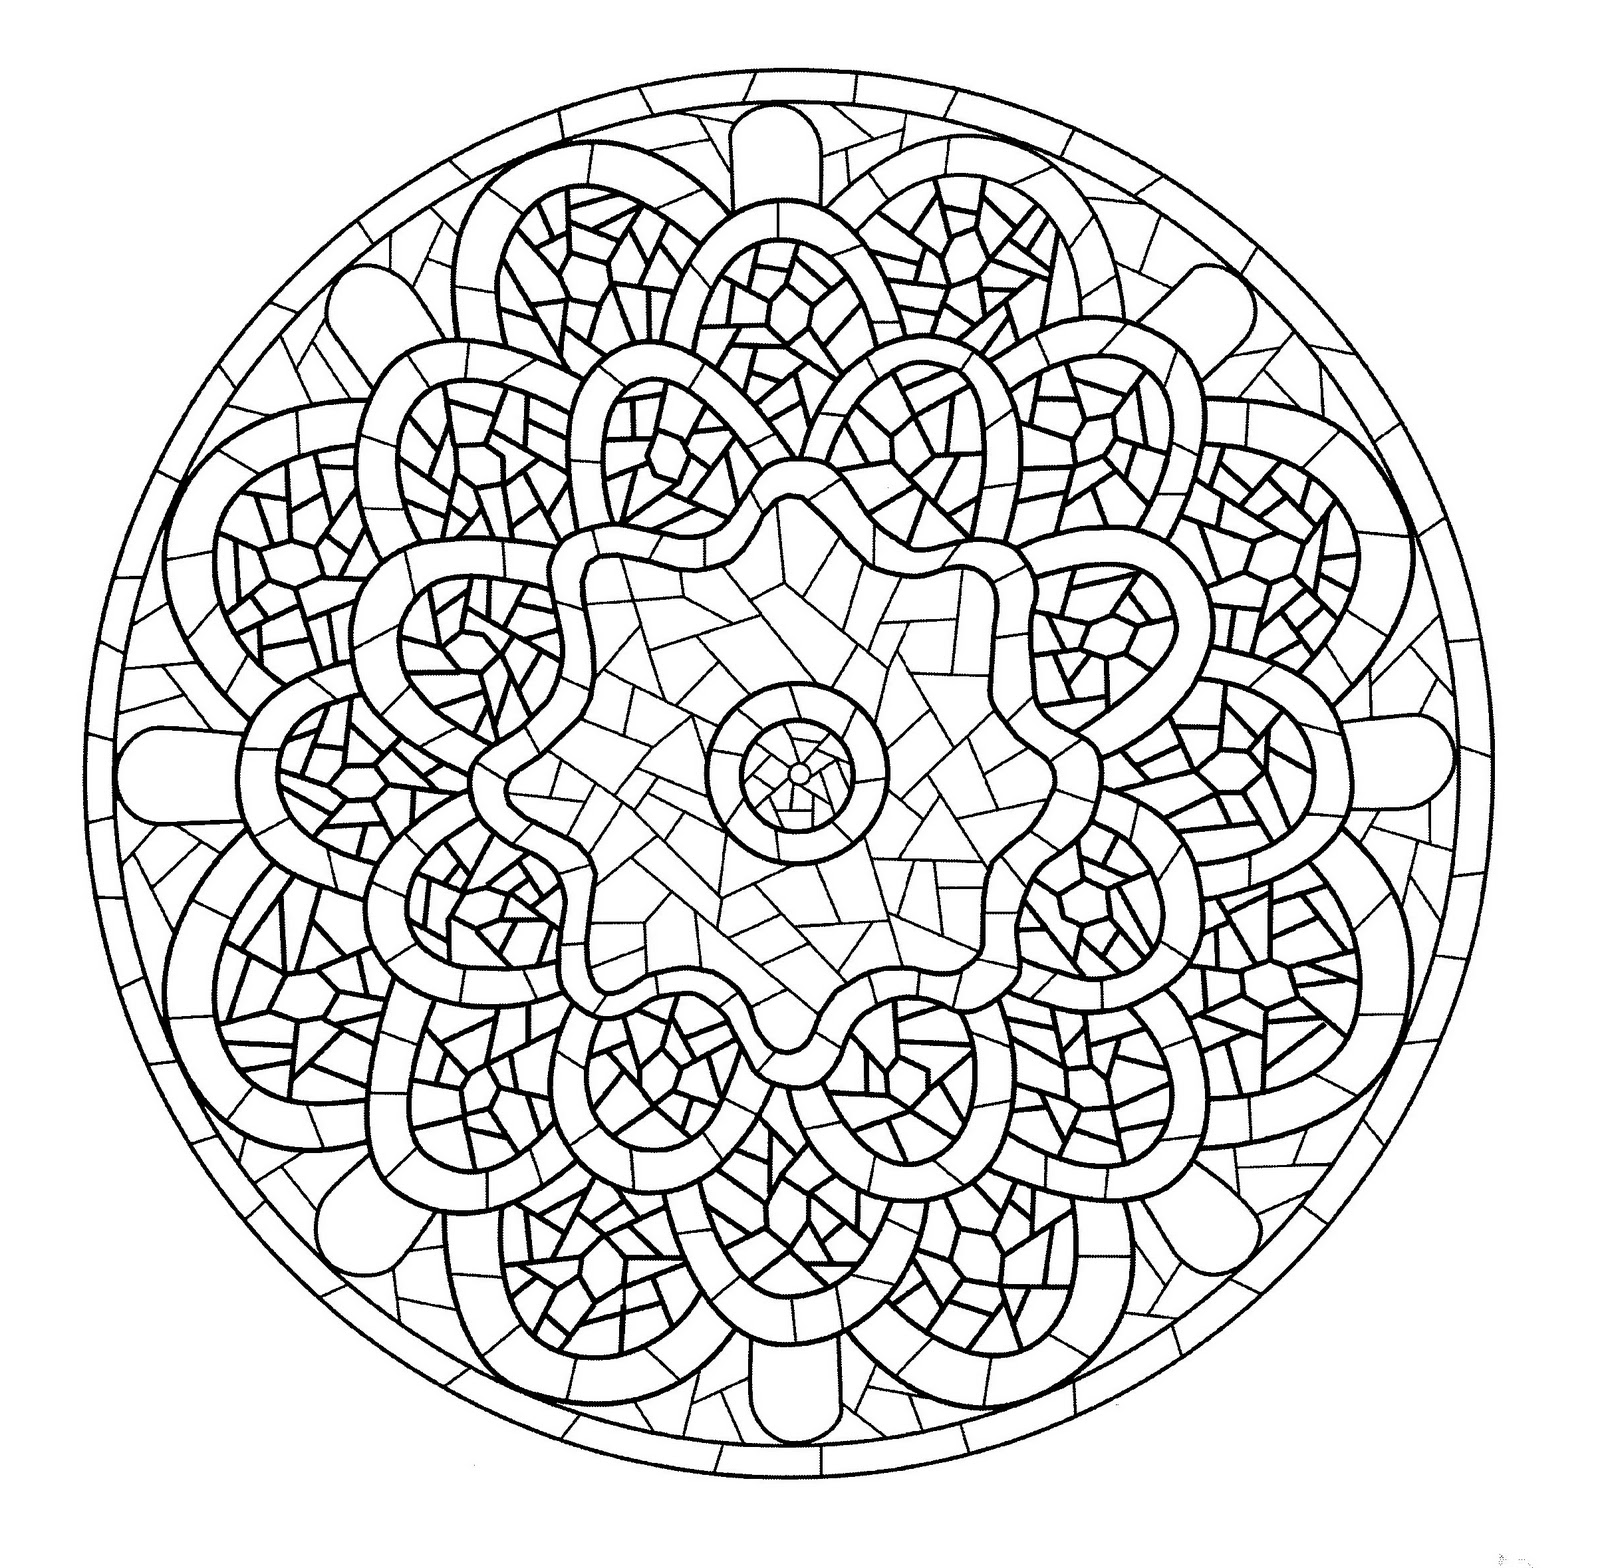 Mandala template looking like a stained glass